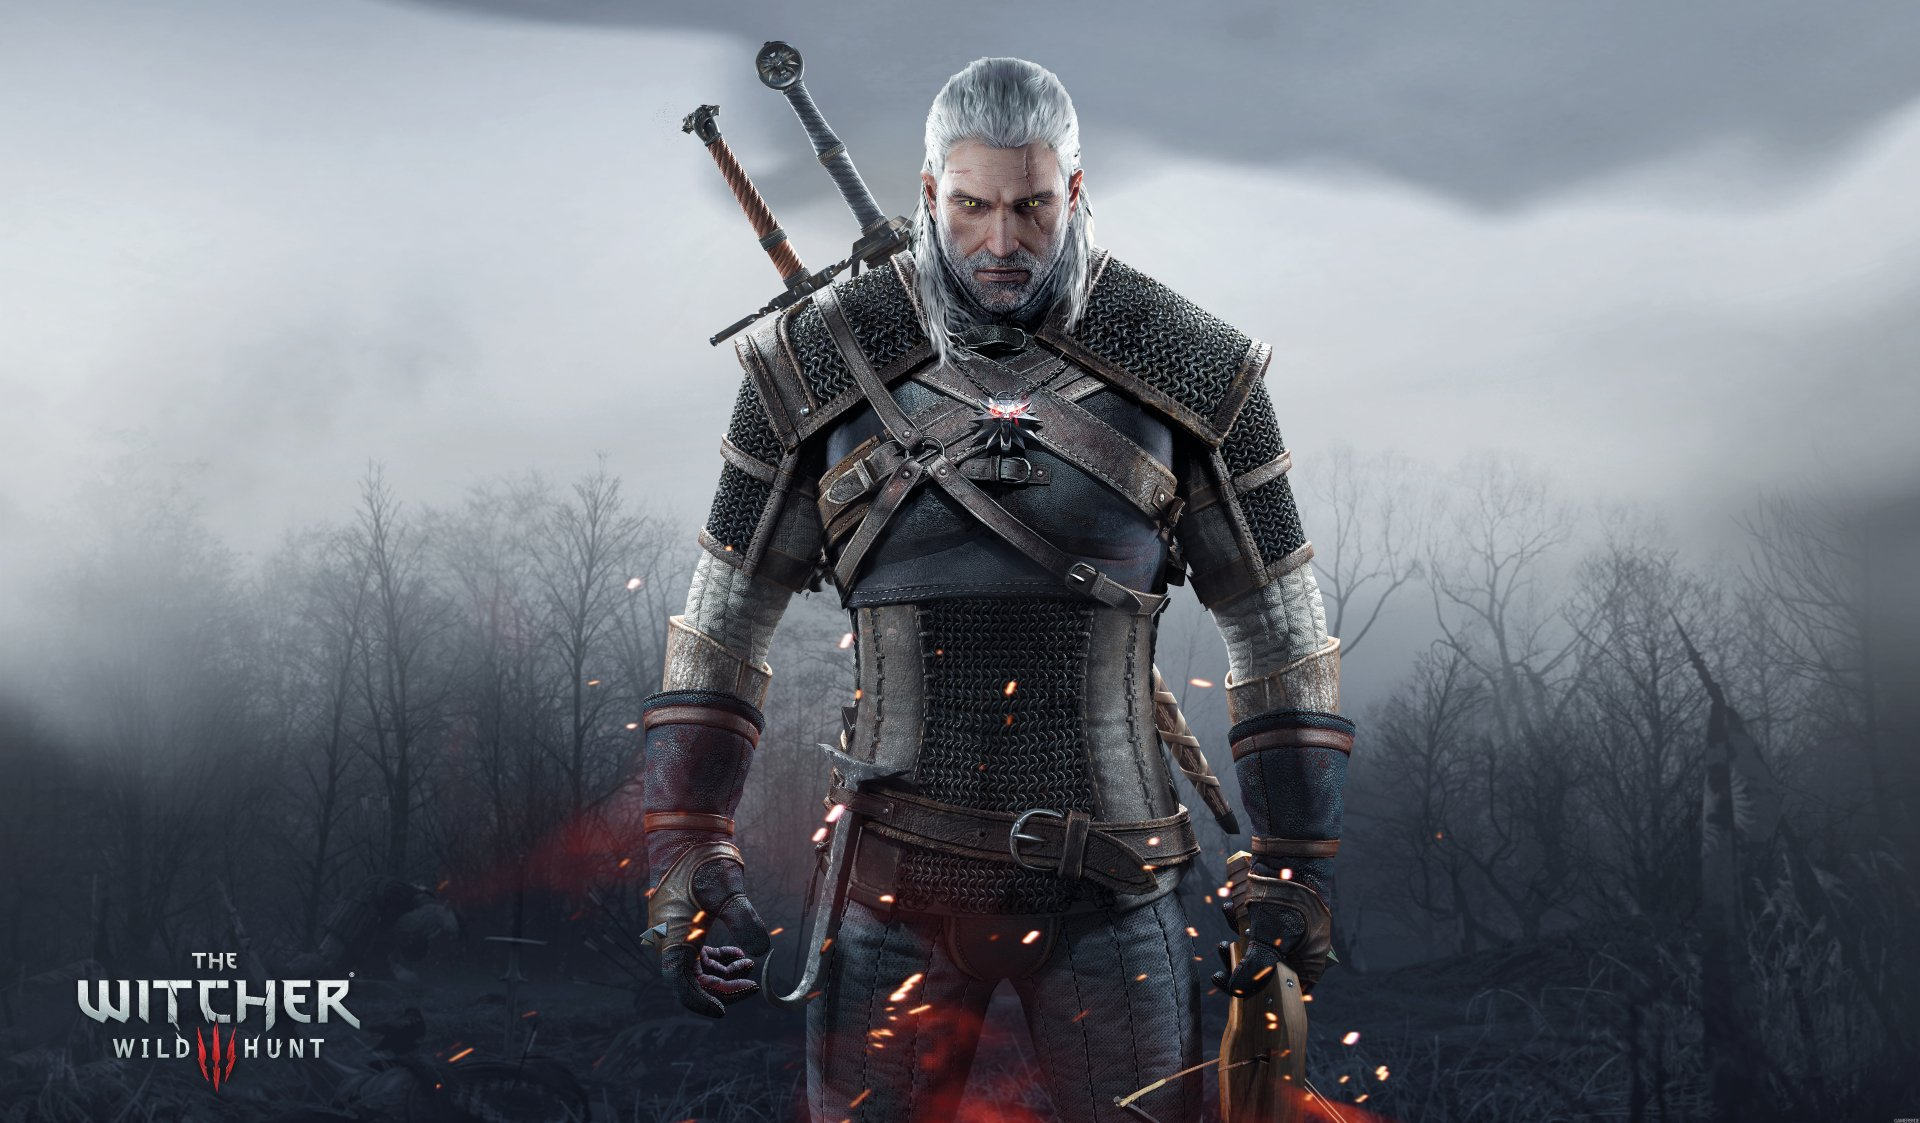 Courtesy of CD Projekt. Photo source:  https://wall.alphacoders.com/big.php?i=532666